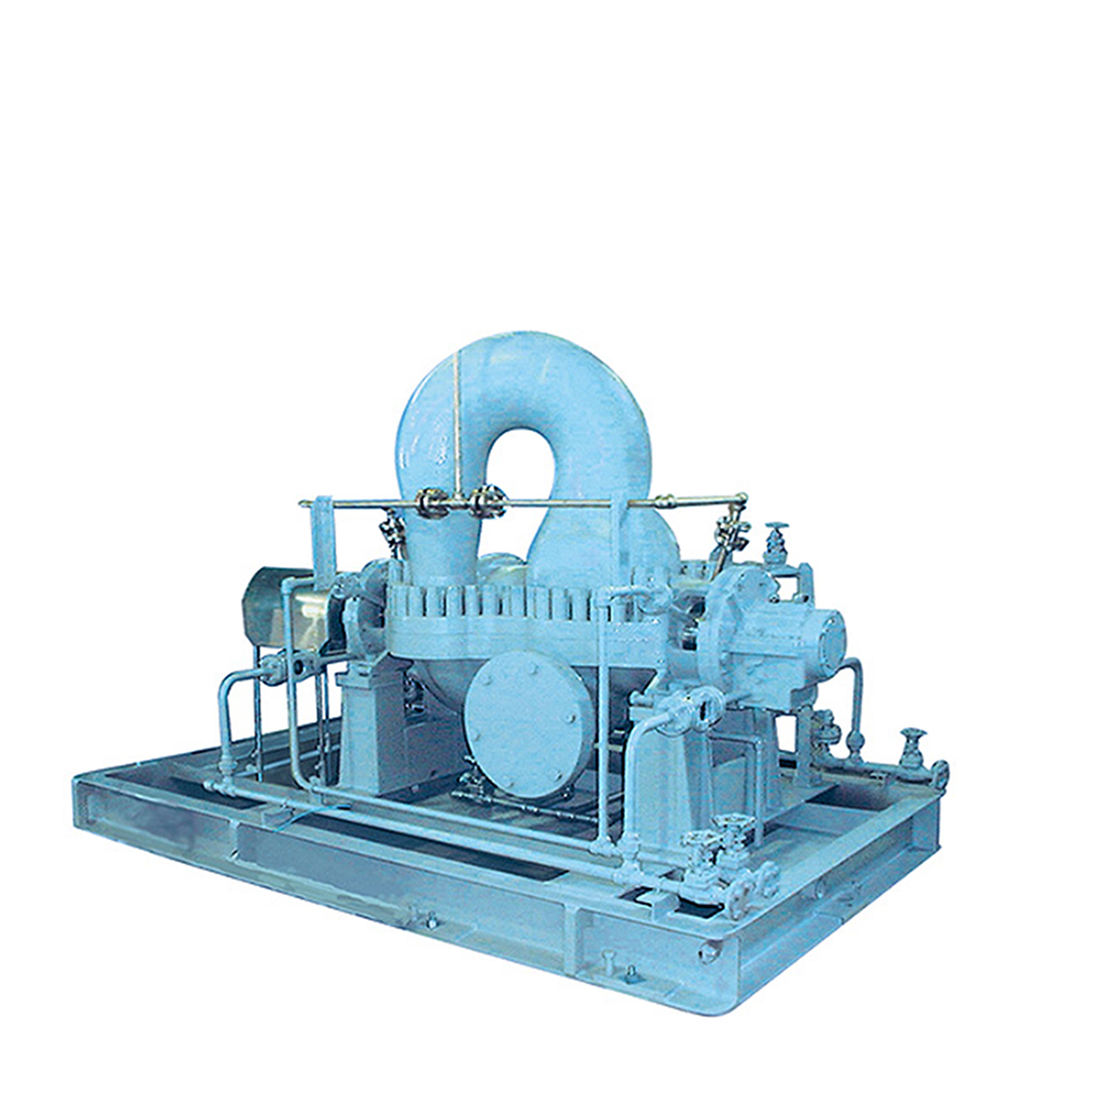 (API Class BB1) water booster progressive cavity cement pumps